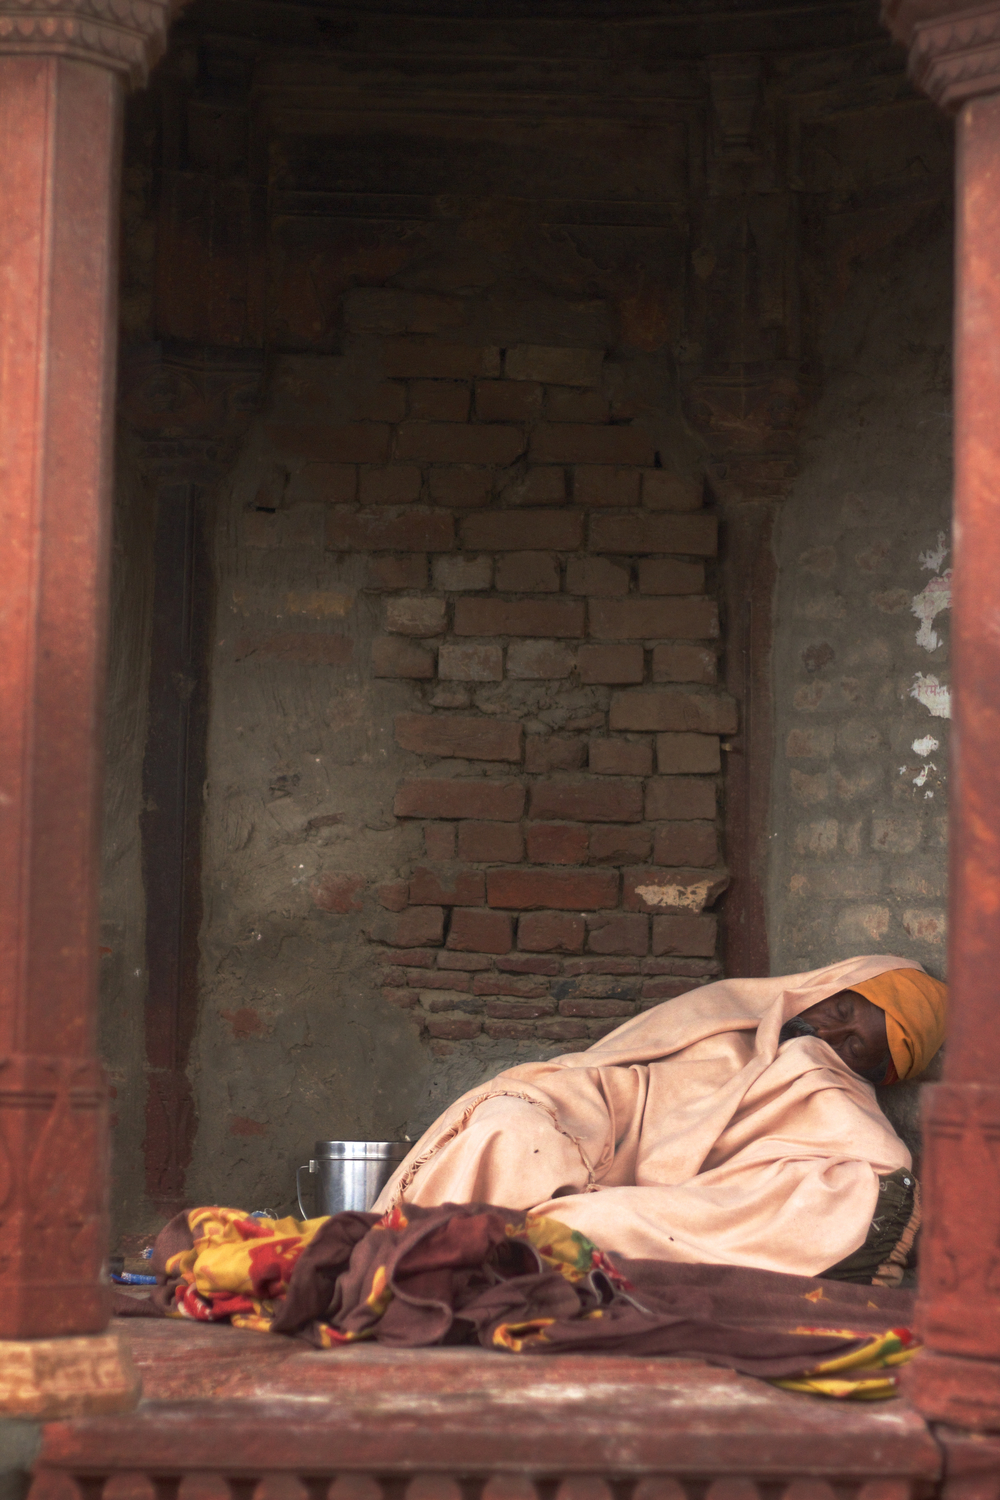 A man rests near the Radha Raman mandir in Vrindavan, India.